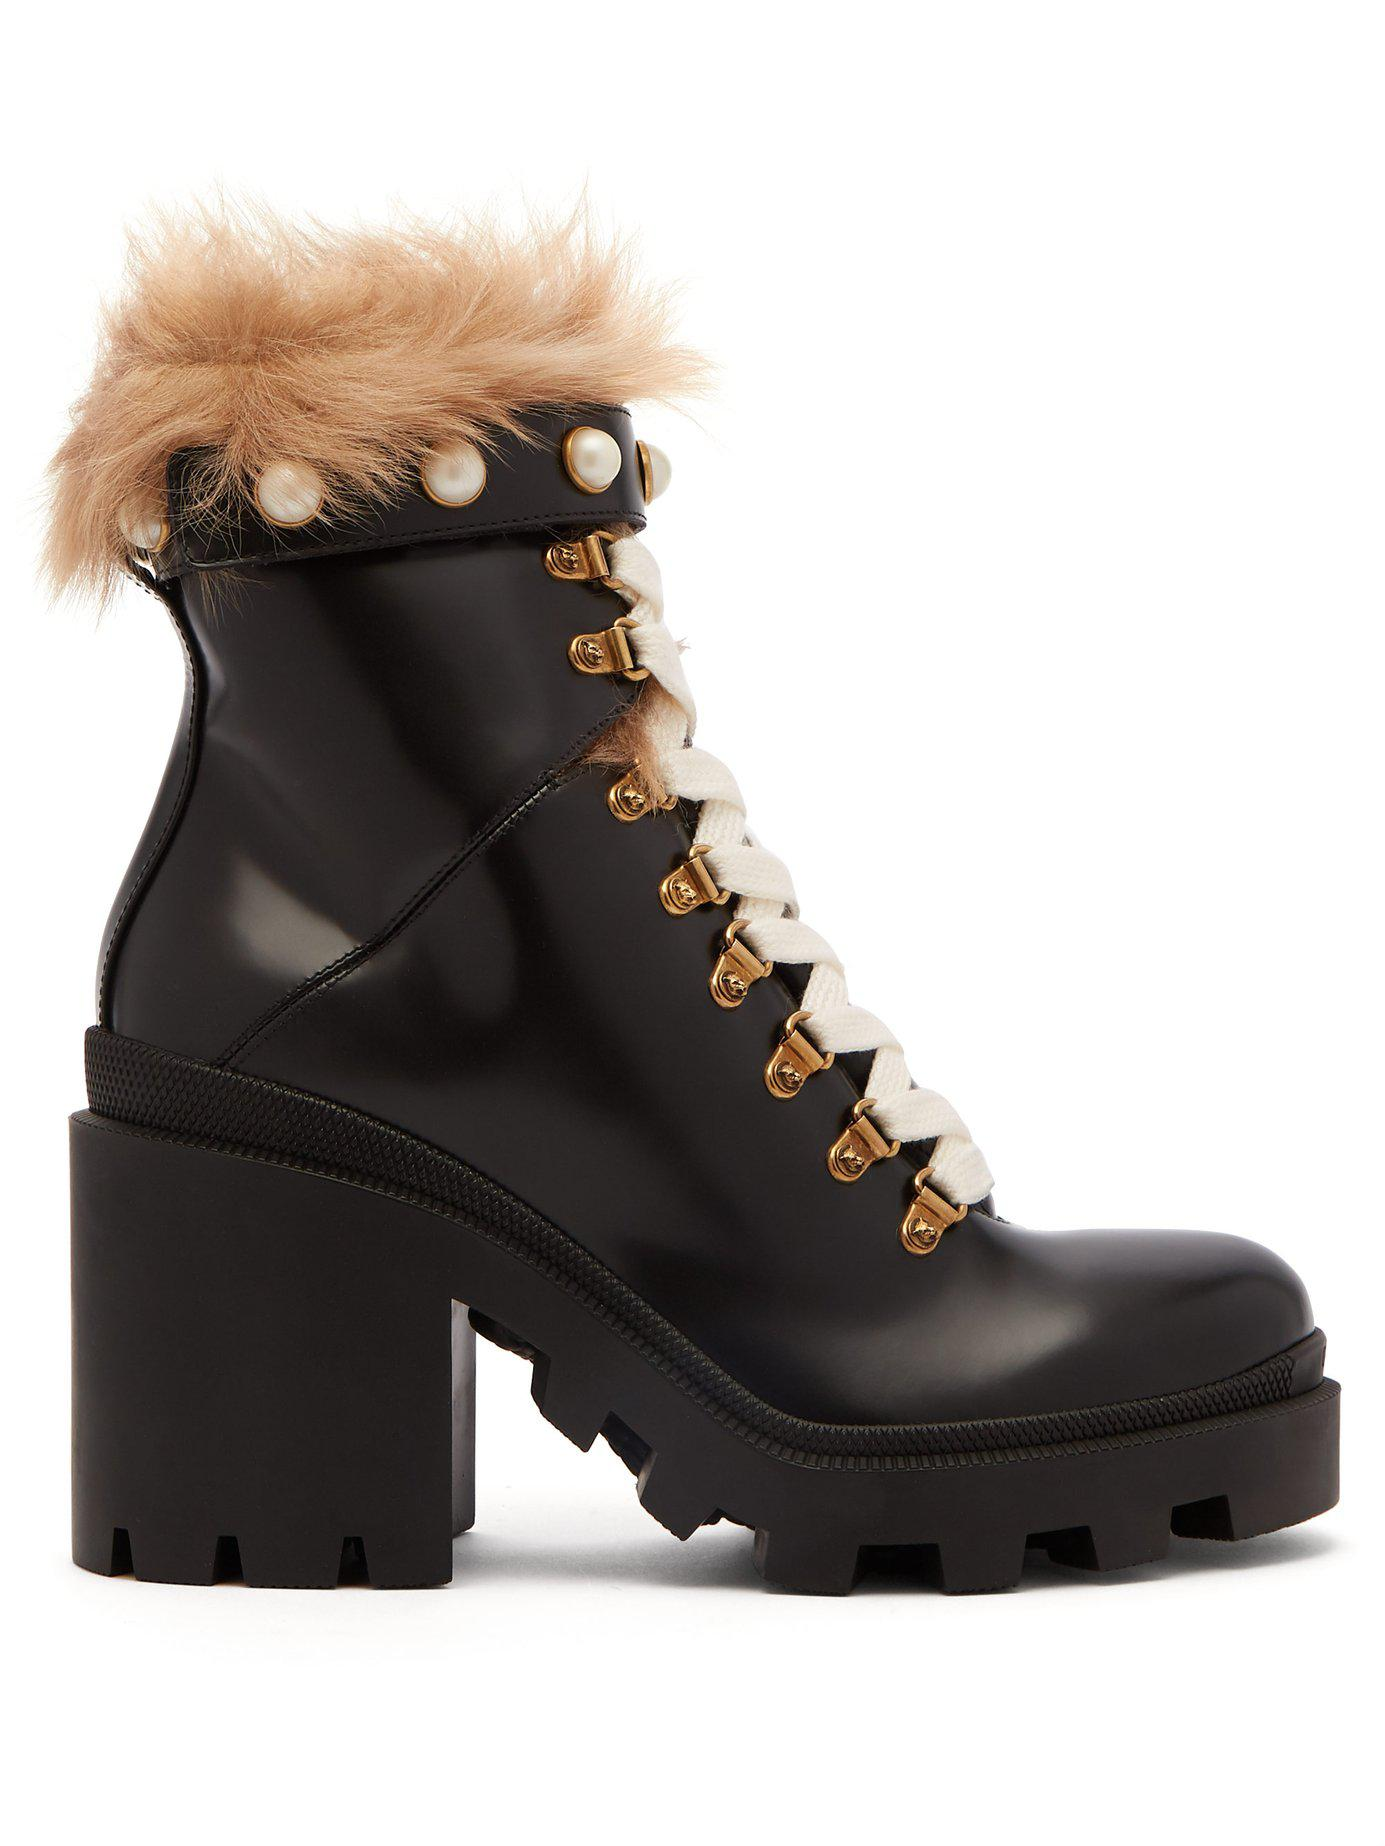 2c2bb6ad45be Lyst - Gucci Shearling Trimmed Leather Ankle Boots in Black